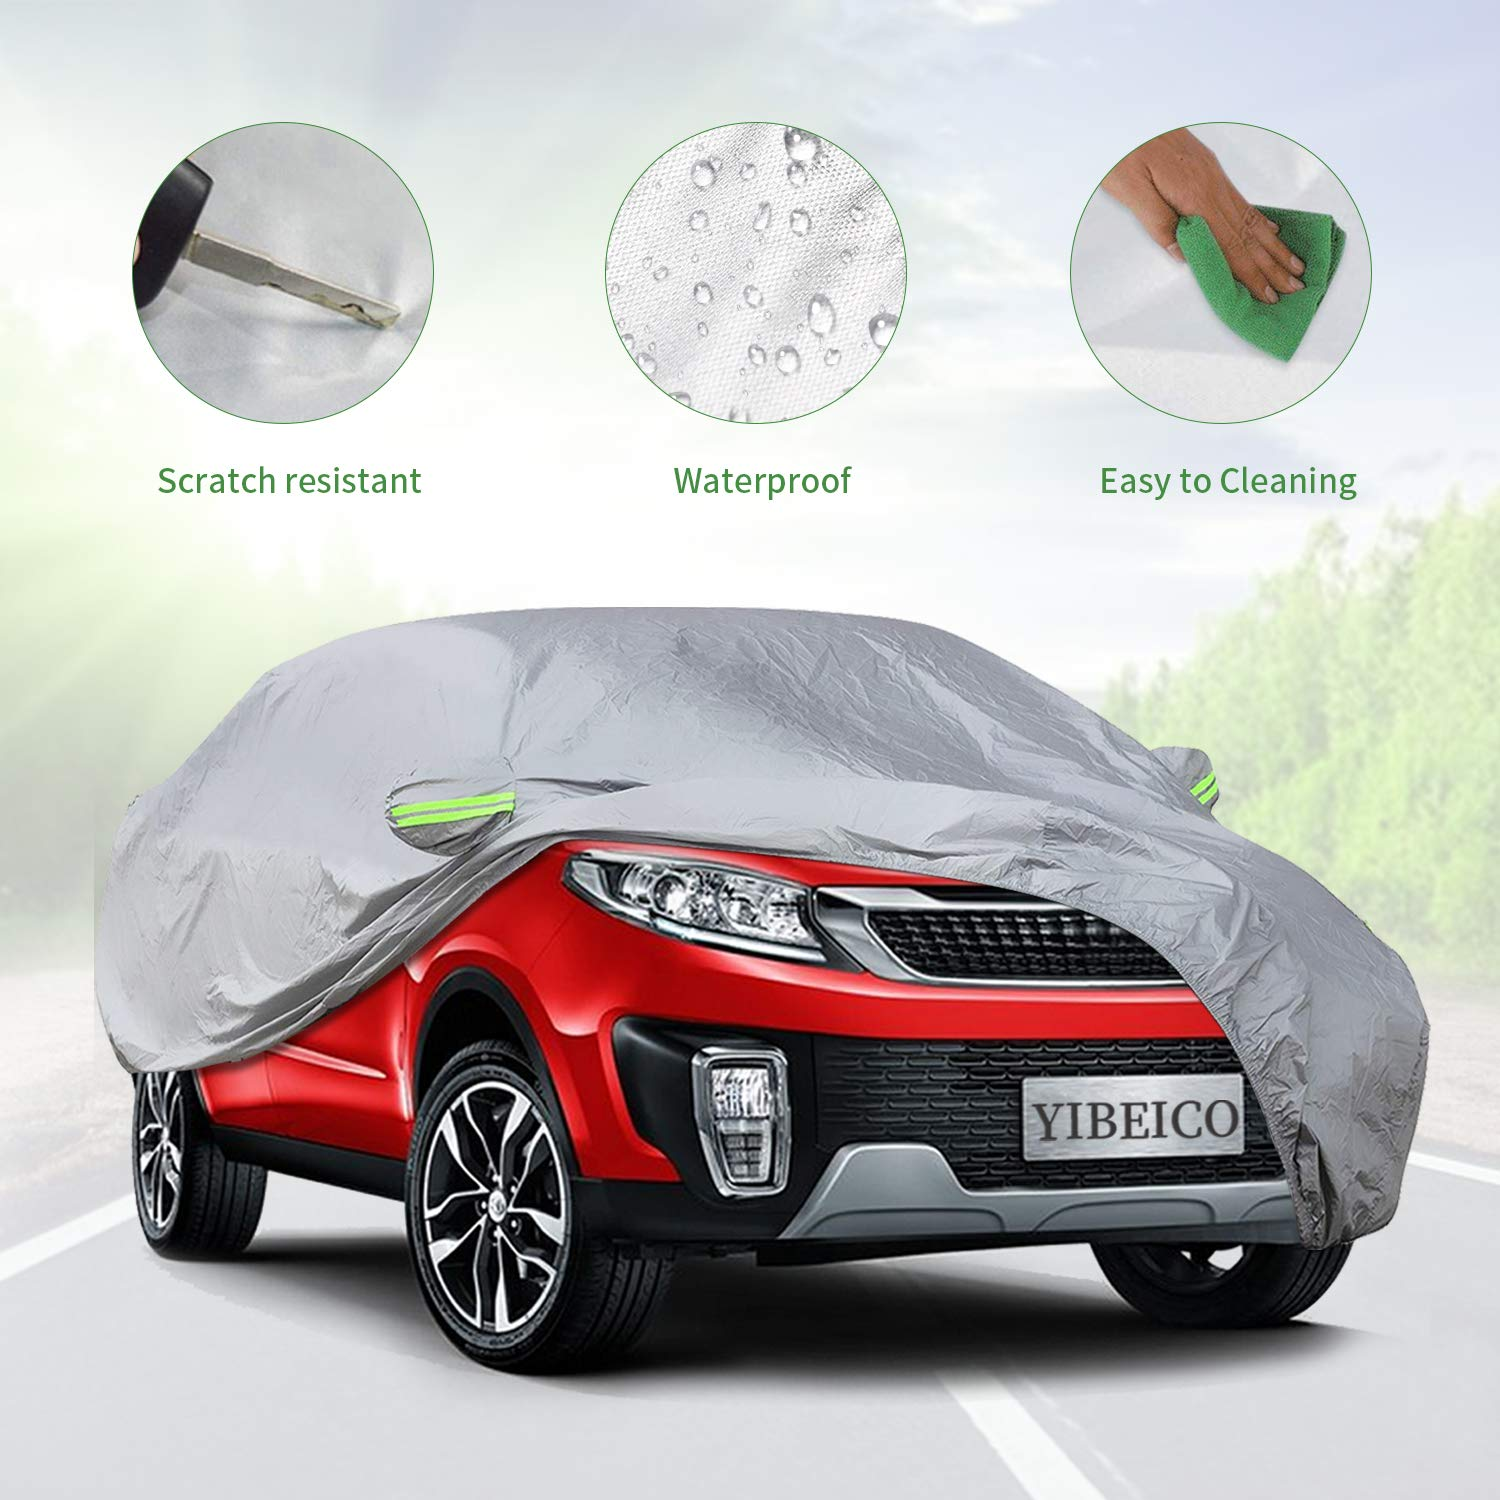 178-191 Windproof Snow-Proof Dust-Proof Scratch Resistant UV Protection Universal Auto Car Cover L 4350438906 Waterproof Outdoor Full Car Cover with a Driver-Side Door Zipper YIBEICO Car Cover for Sedan